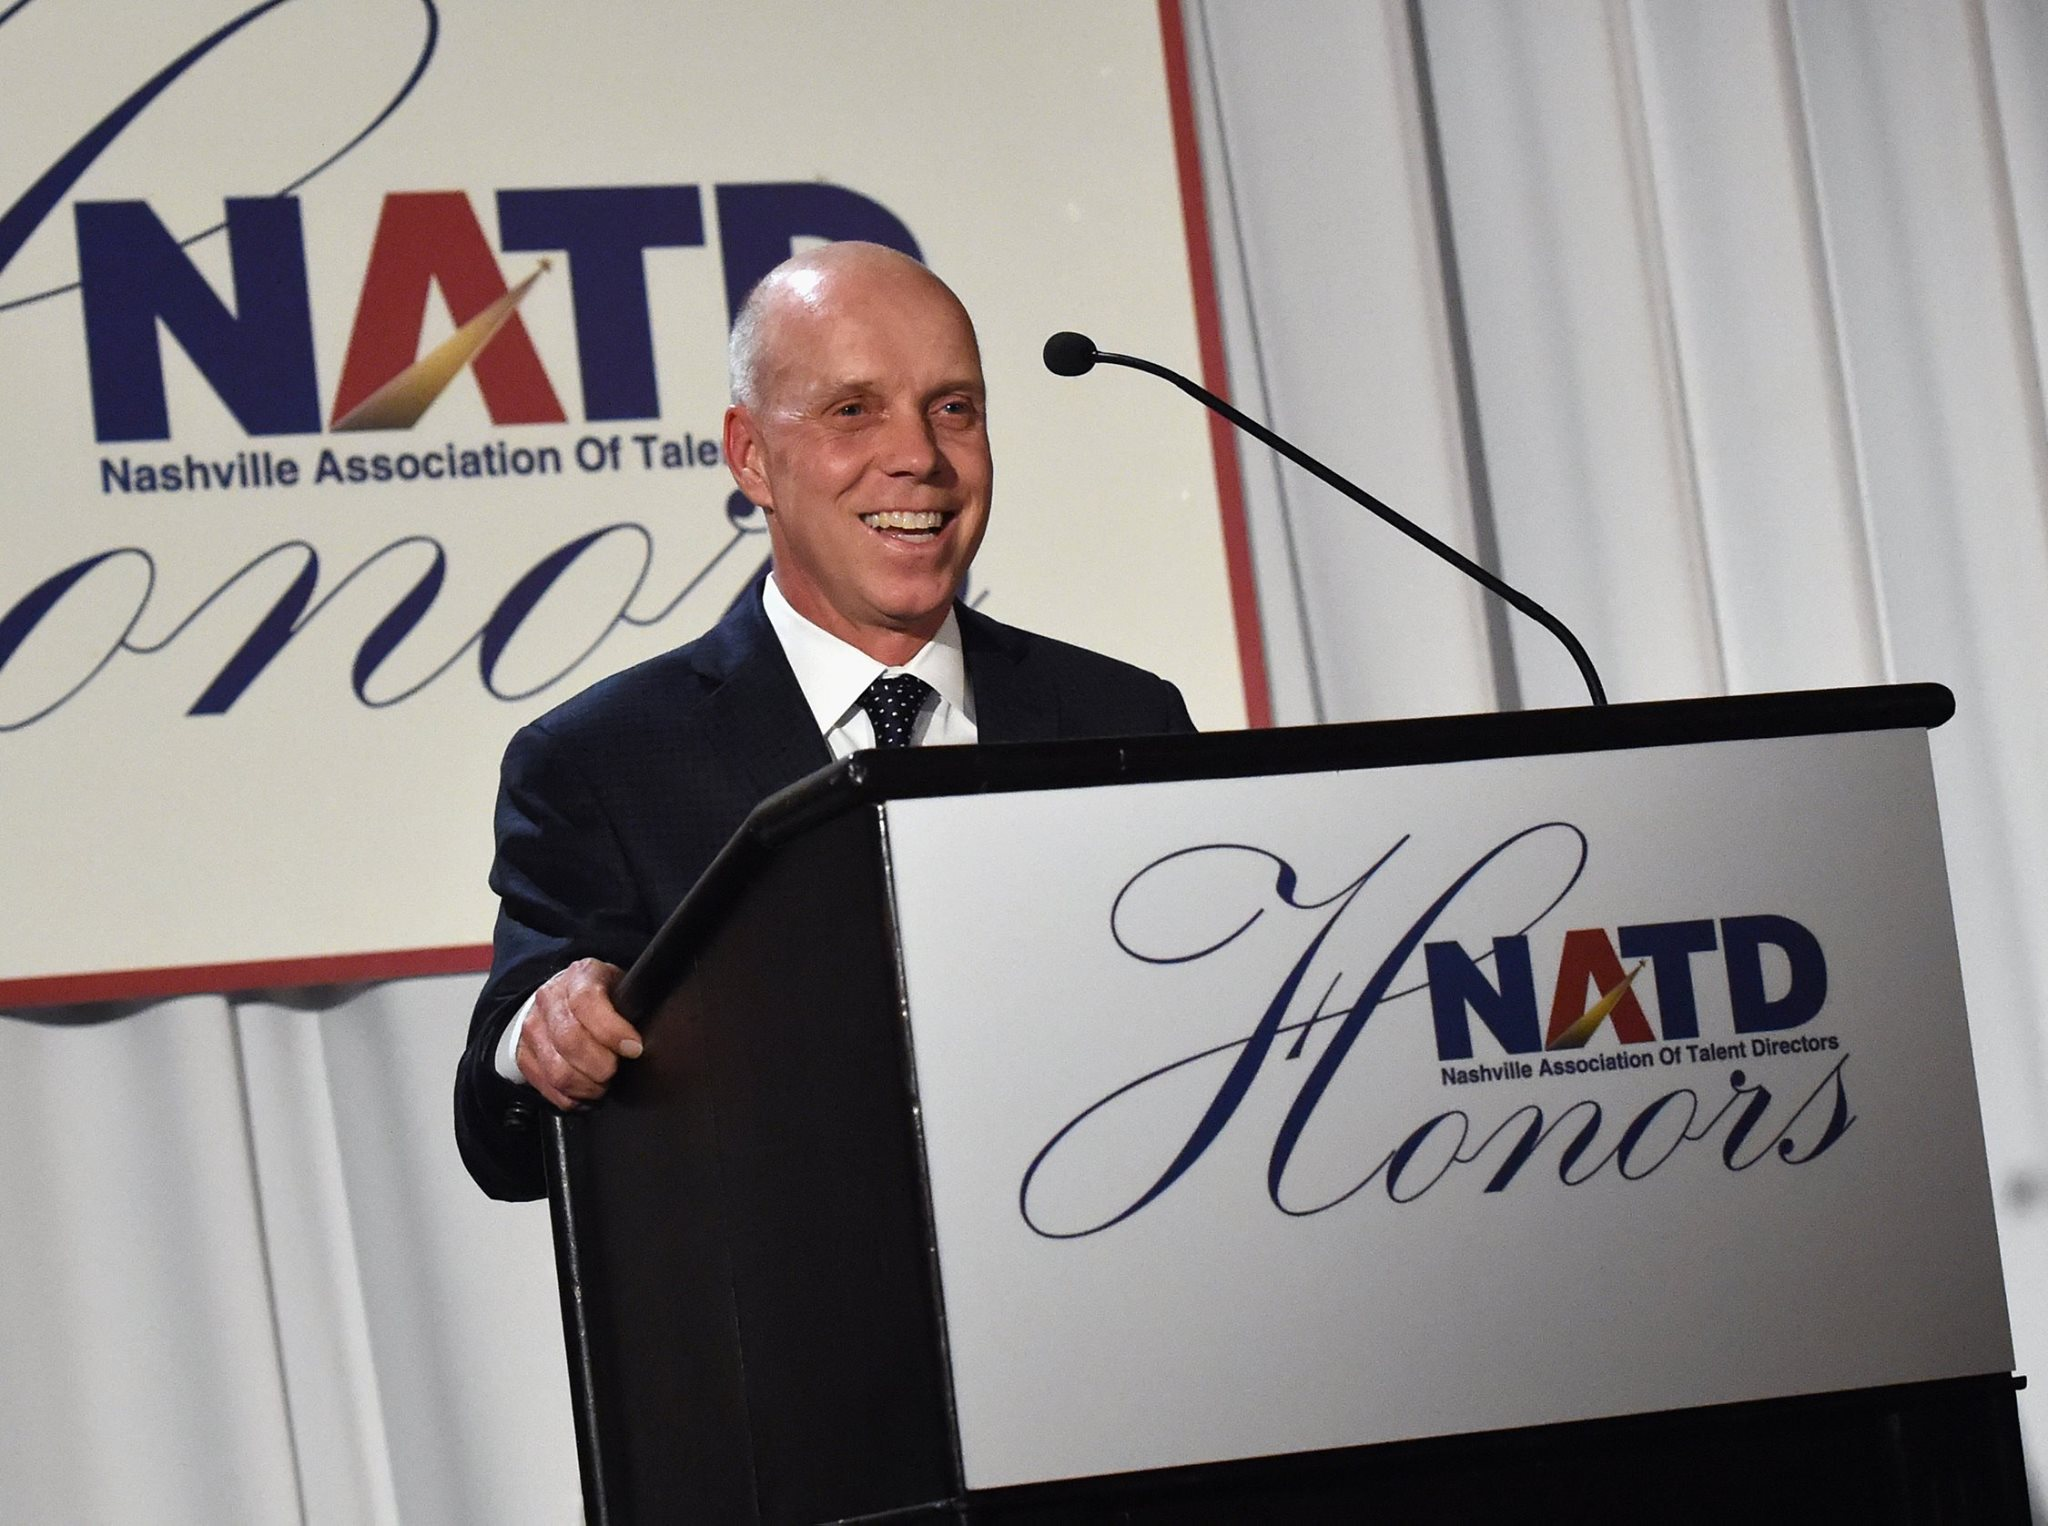 Honoree Scott Hamilton